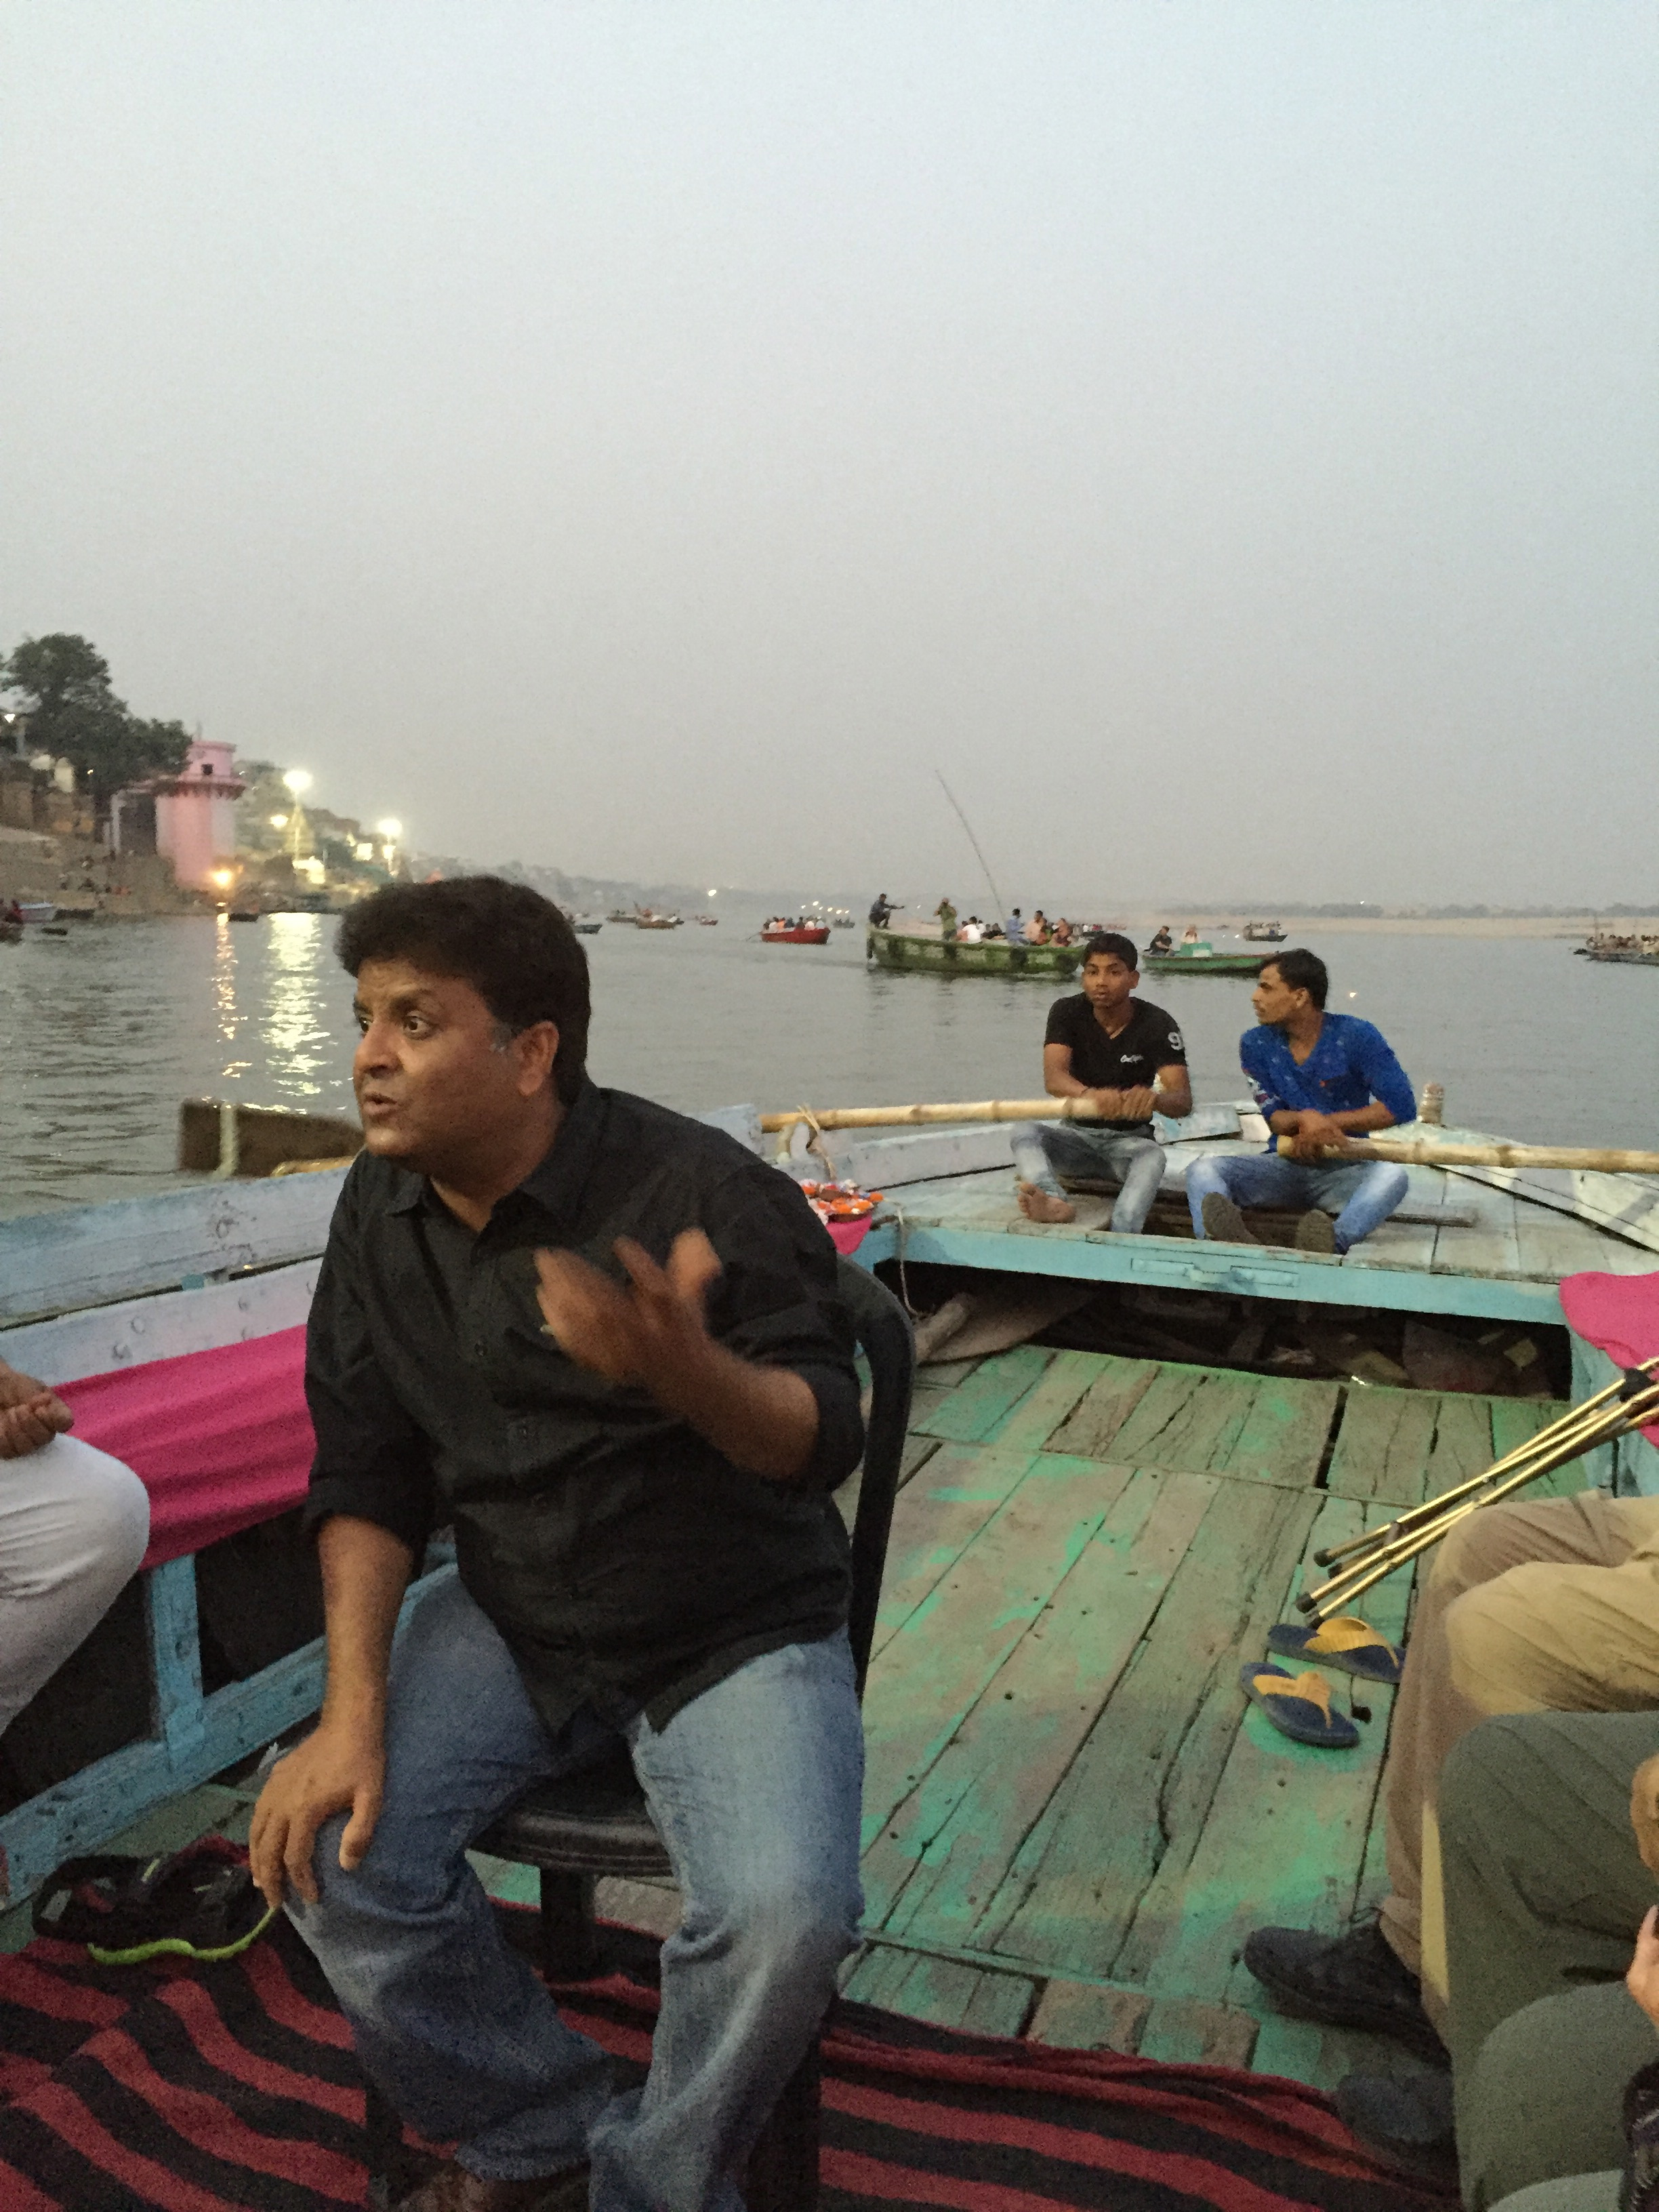 Aboard a small wooden boat, our guide explains the Hindu ritual cremations we are about to witness on the shores of the Ganges River in Varanasi, India.